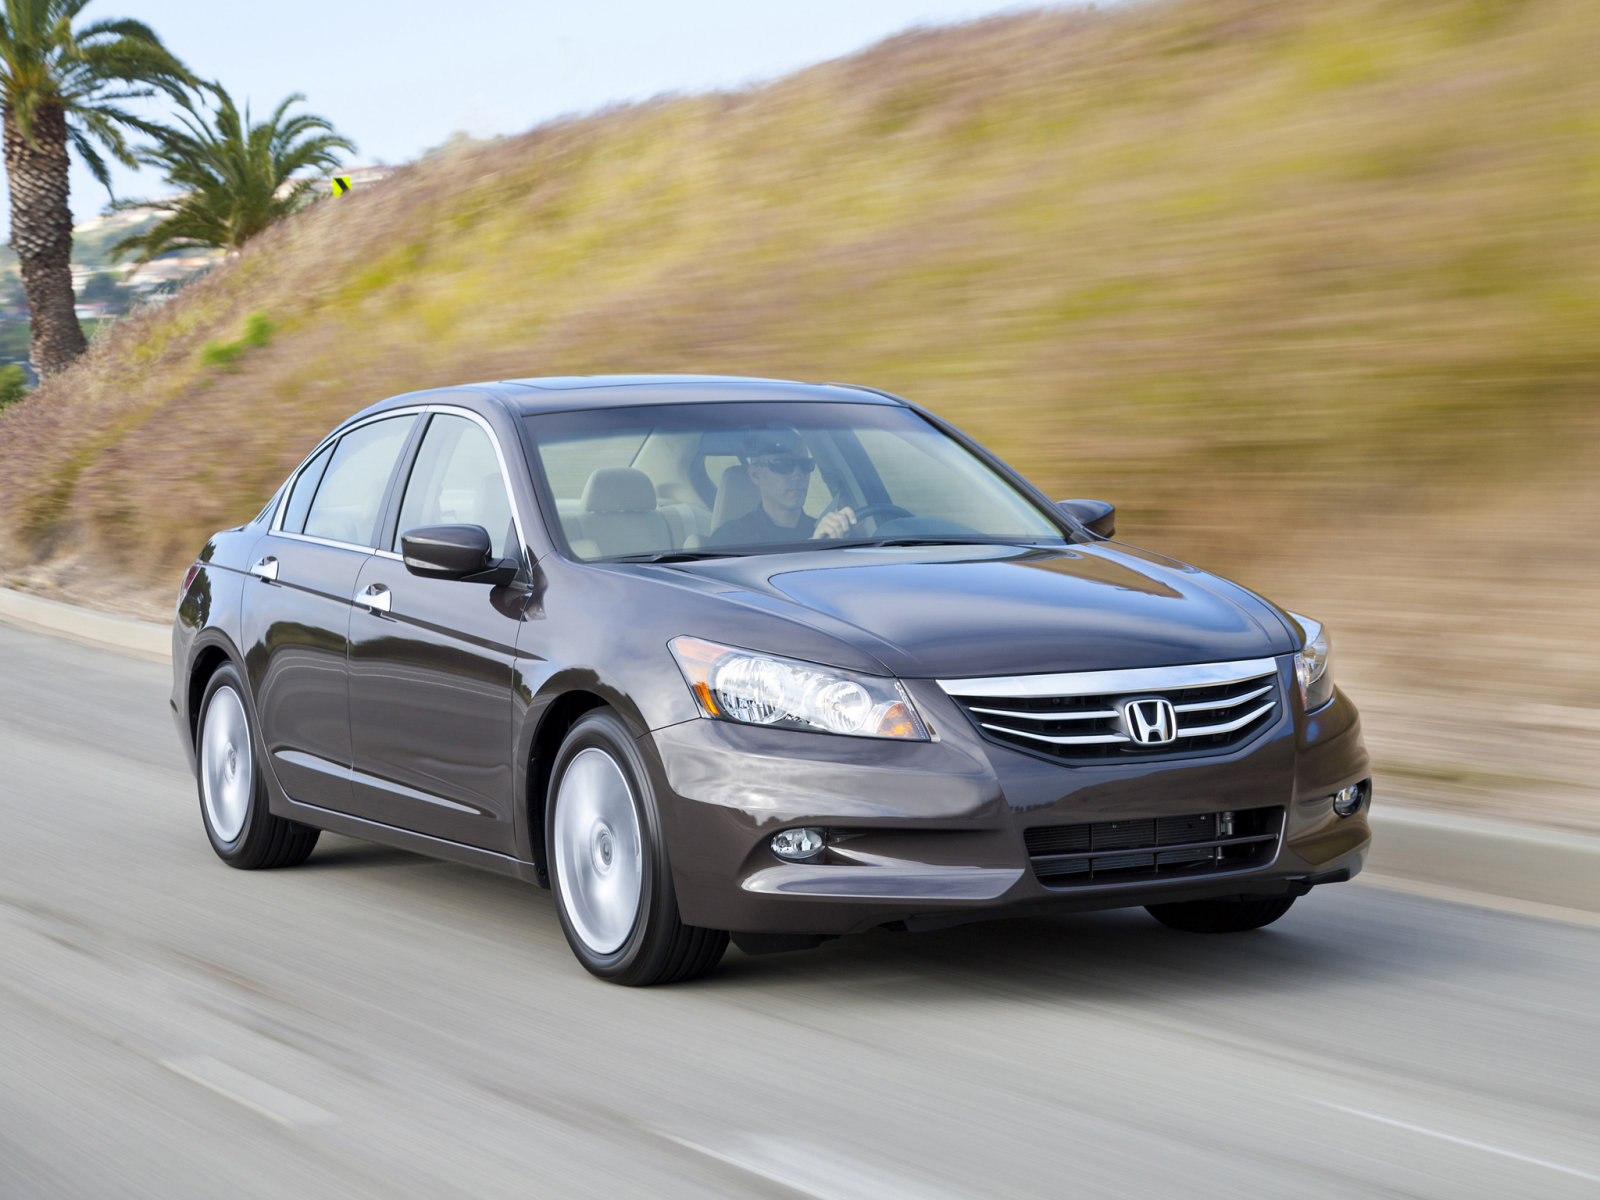 Honda Accord Sedan 2012